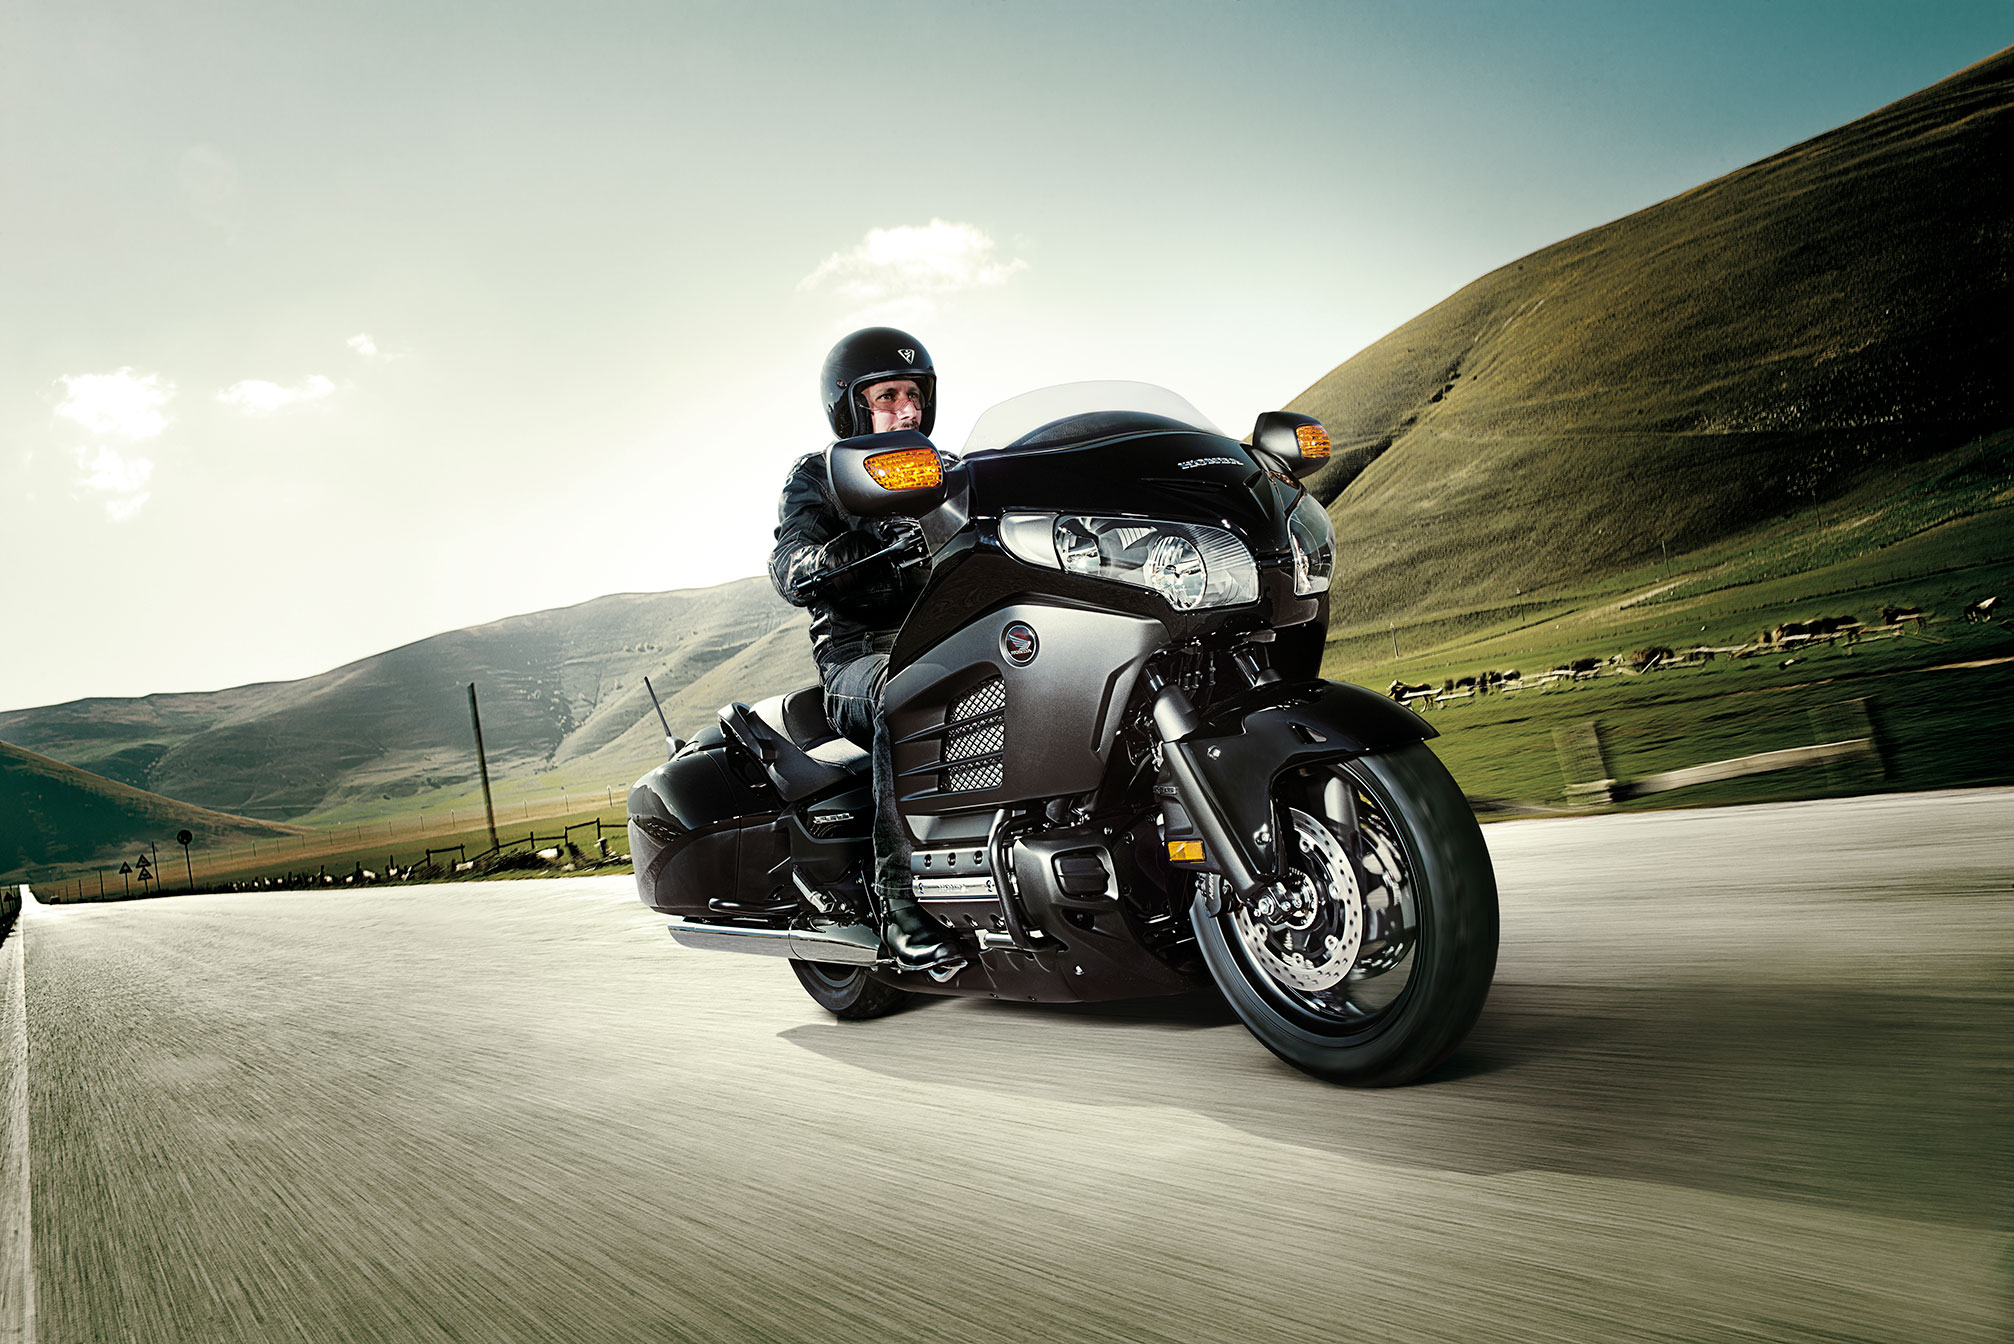 2014 Honda Gold Wing F6B Deluxe GL1800BD Review